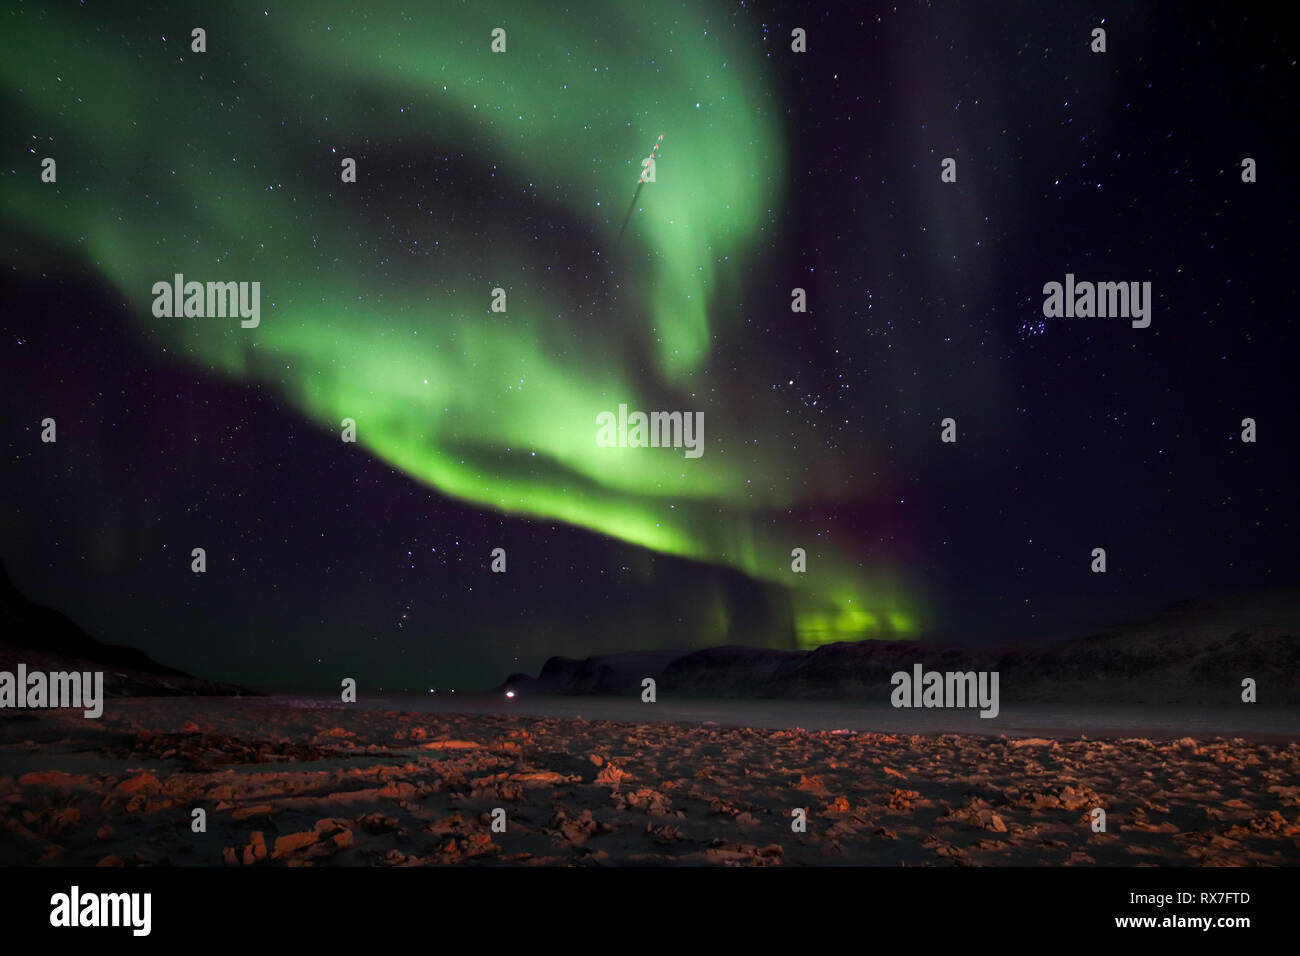 Aurora Borealis viewed from the small Arctic town of Pangnirtung over the frozen Cumberland Sound. - Stock Image